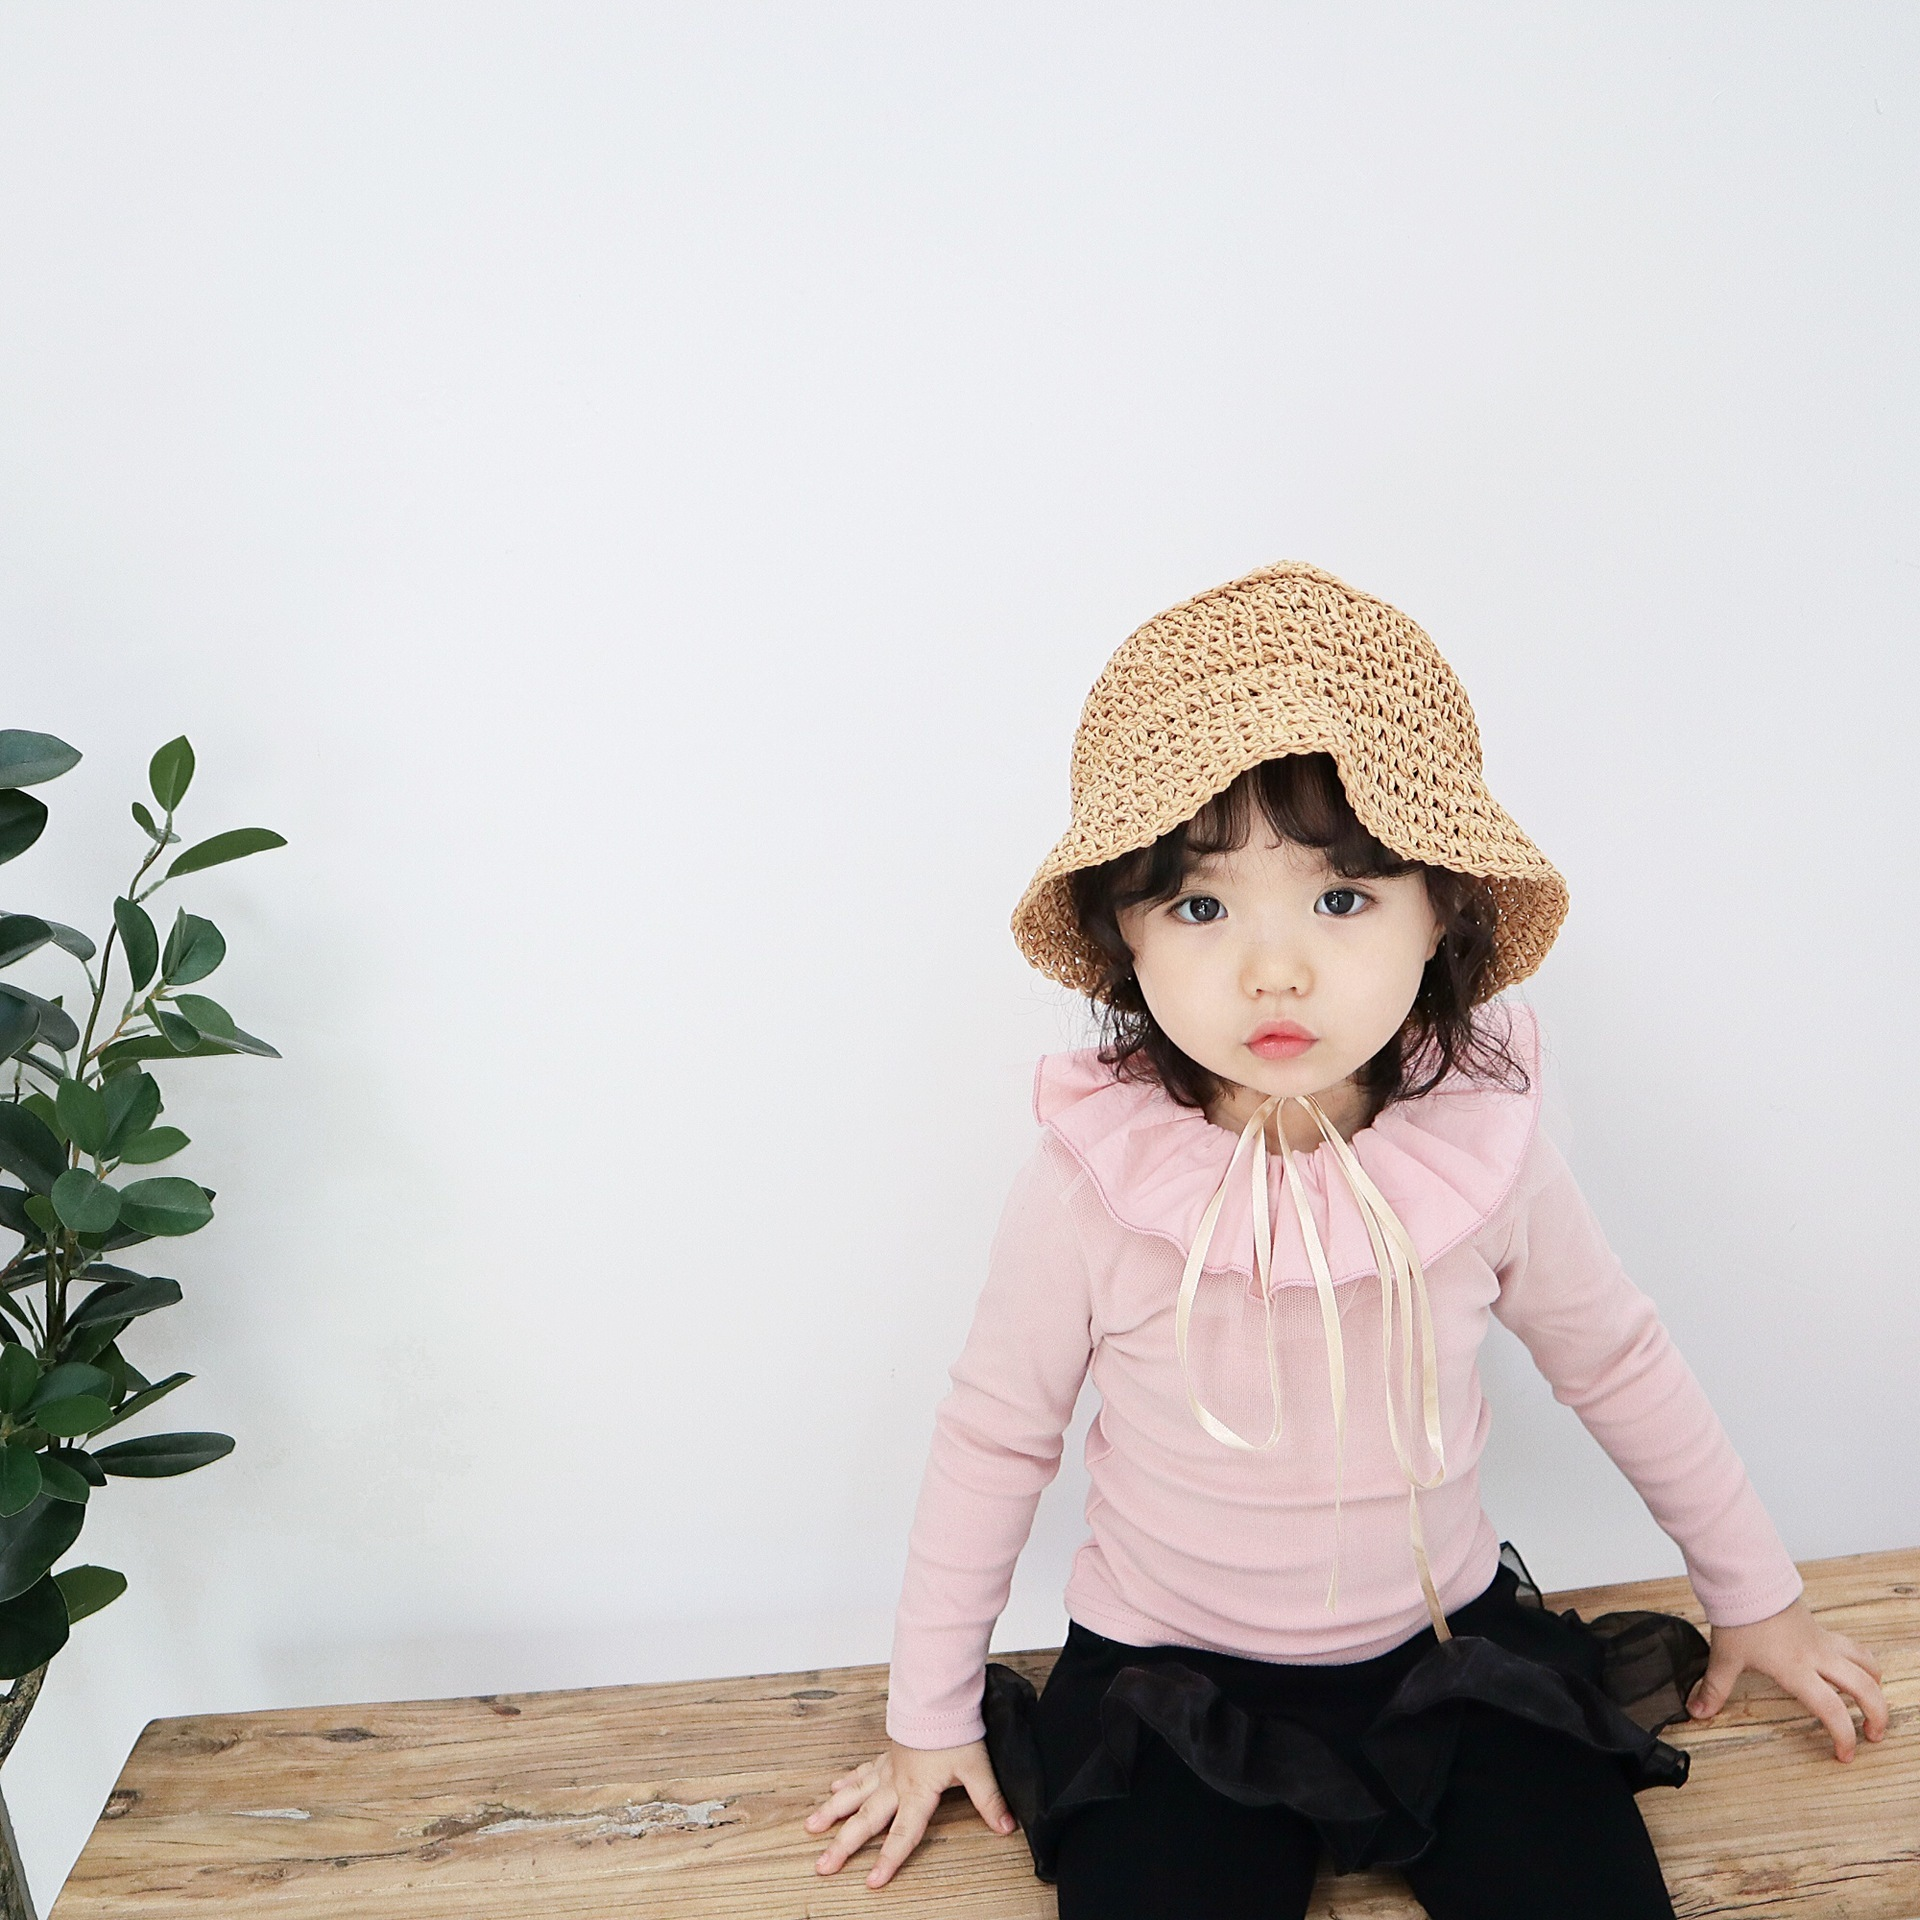 Toddler Blouse Baby Girl Pure Cotton Soft Ruffles Turn Down Collar Long Sleeve White Shirt Basic Bottoming Blouse Clothes 12m-5T